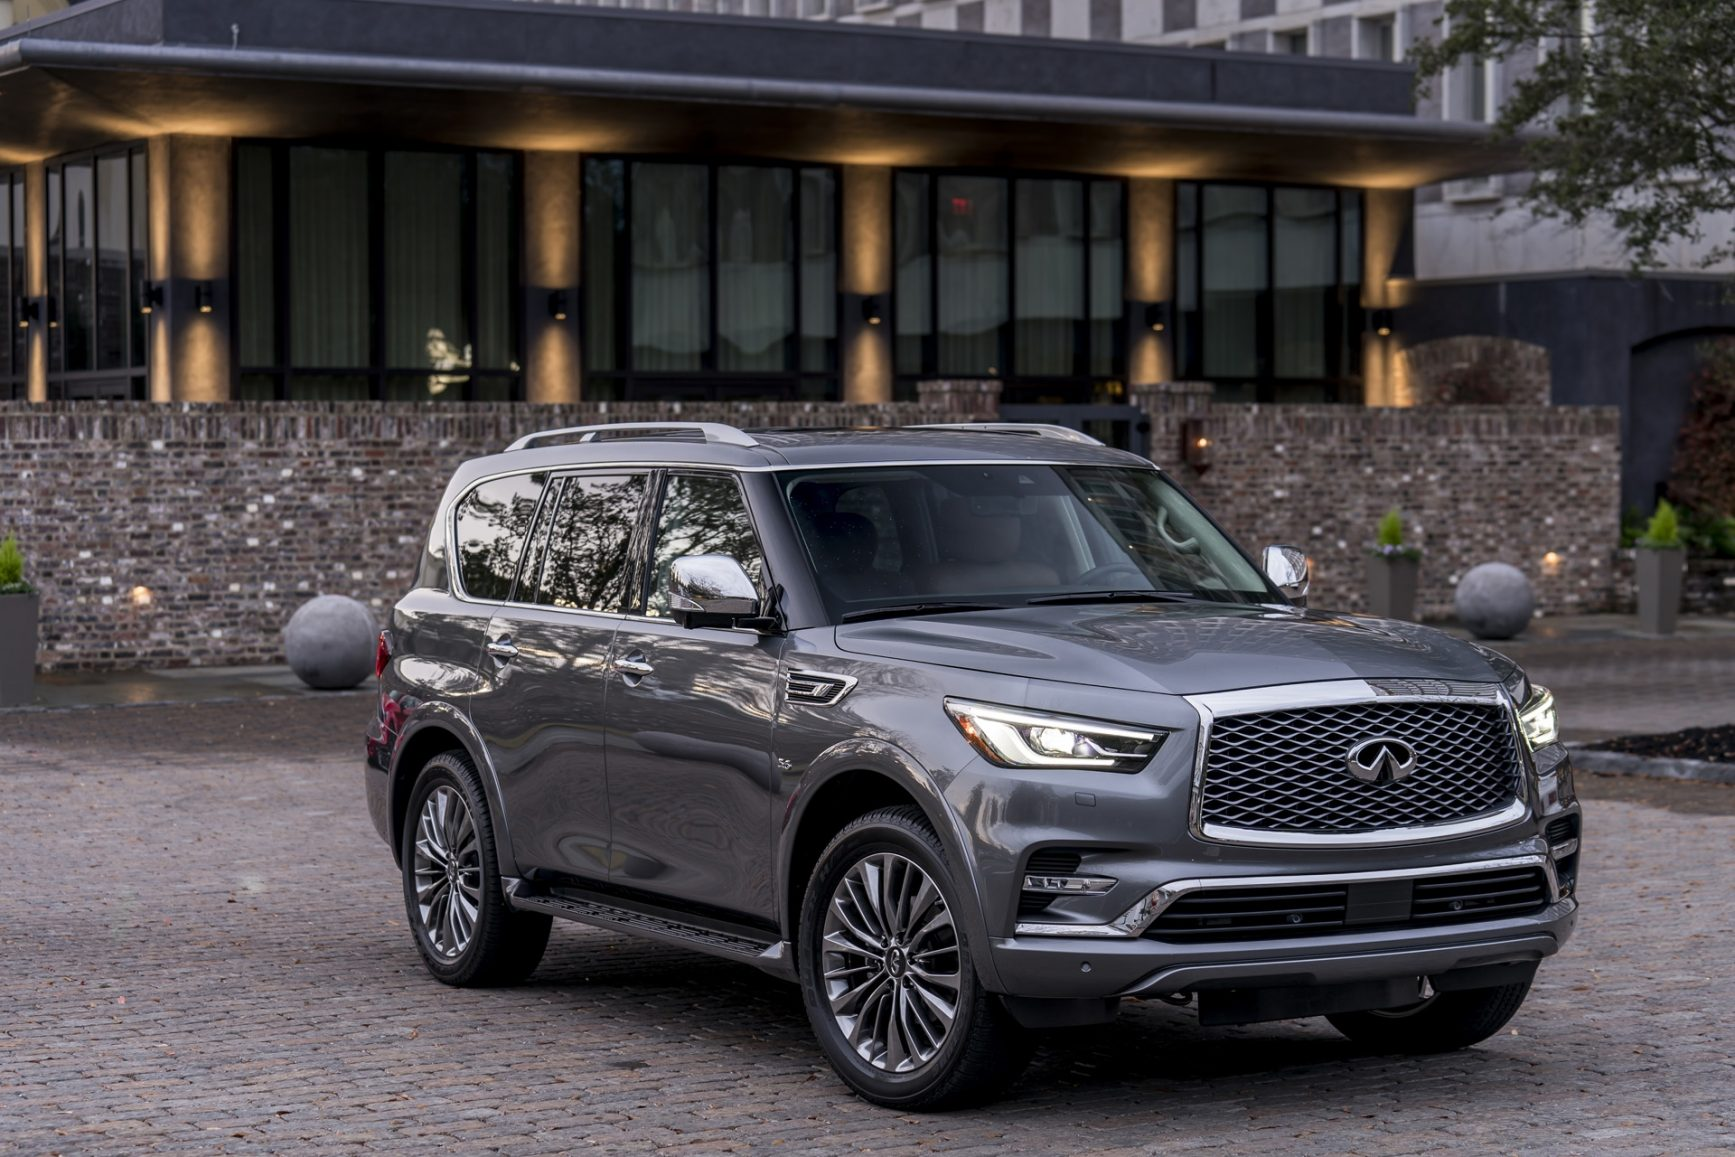 1735x1157 - Infiniti QX80 Wallpapers 14